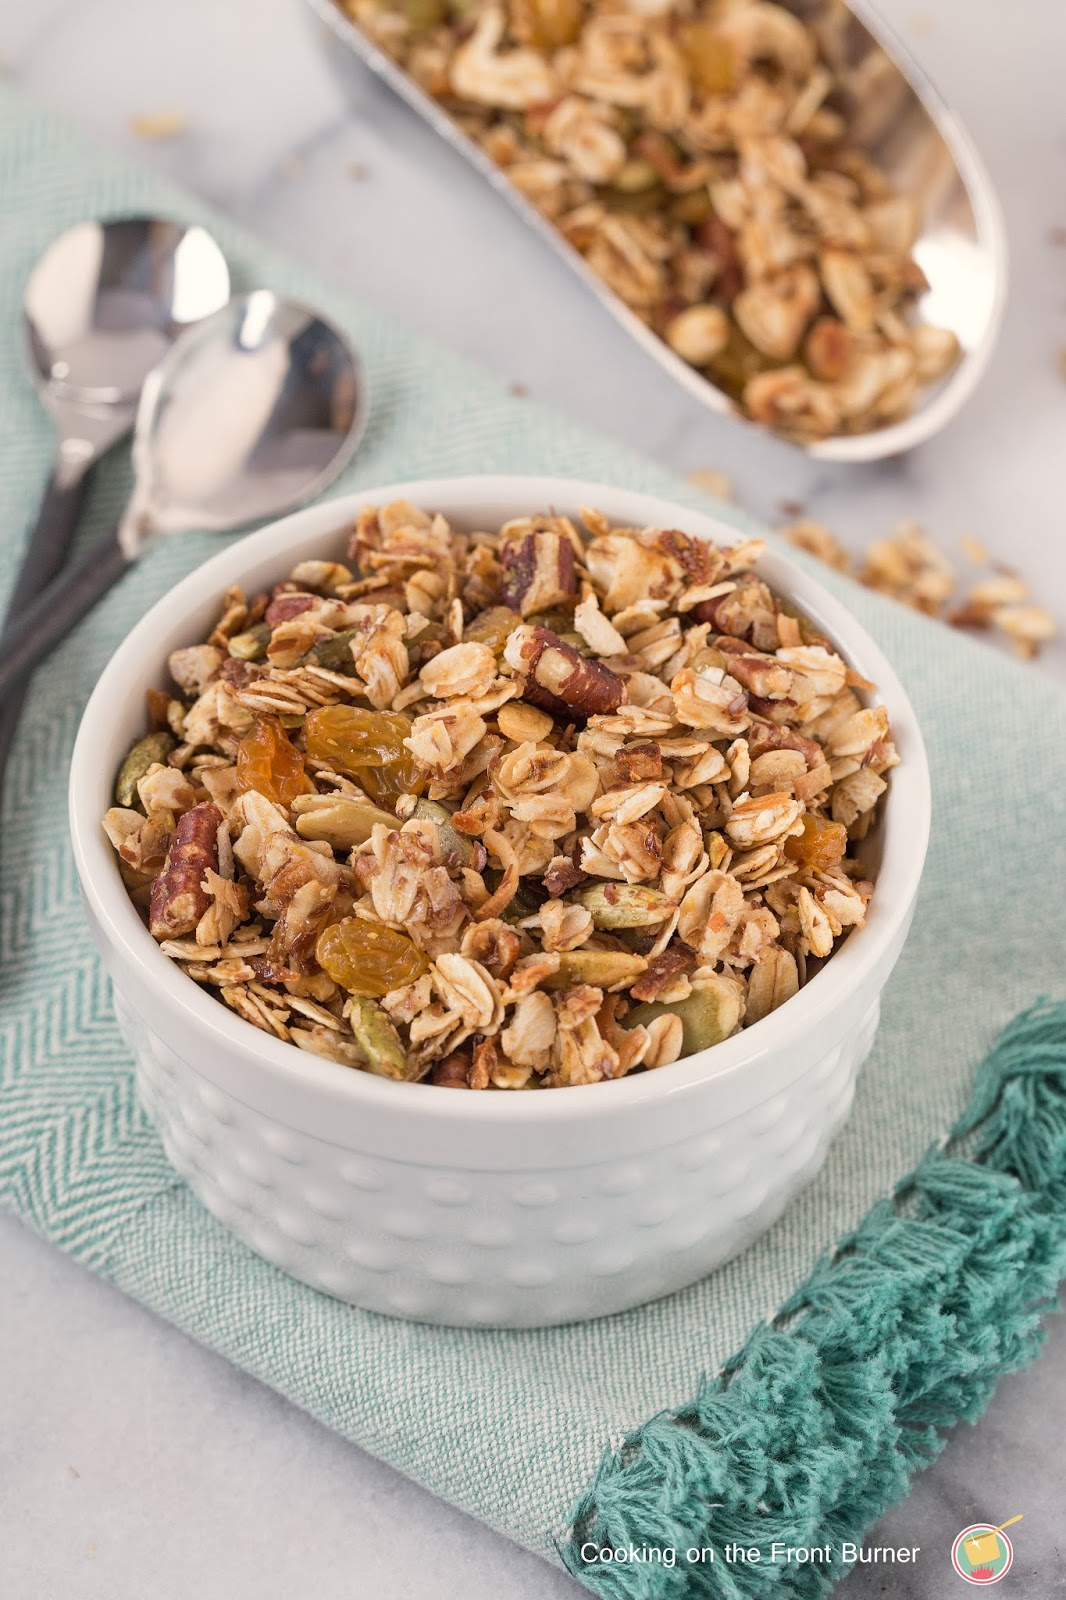 Homemade Honey Granola   Cooking on the Front Burner